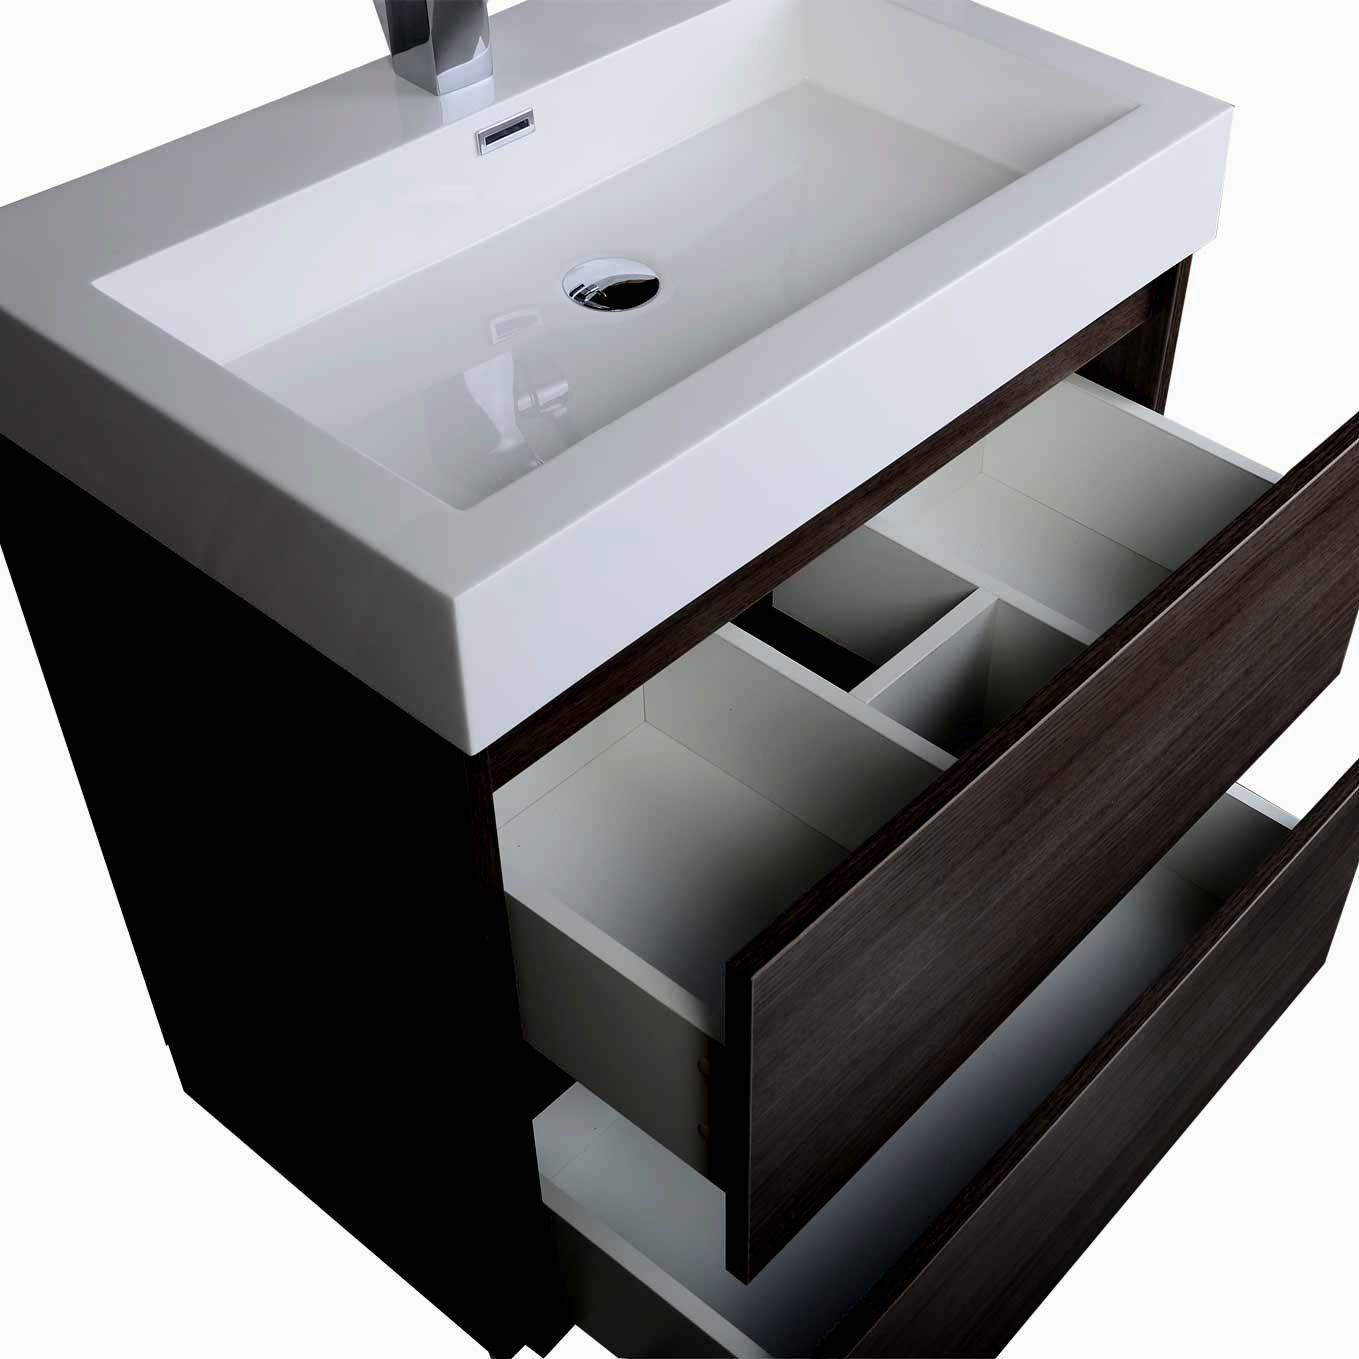 contemporary 24 bathroom vanity concept-Contemporary 24 Bathroom Vanity Layout